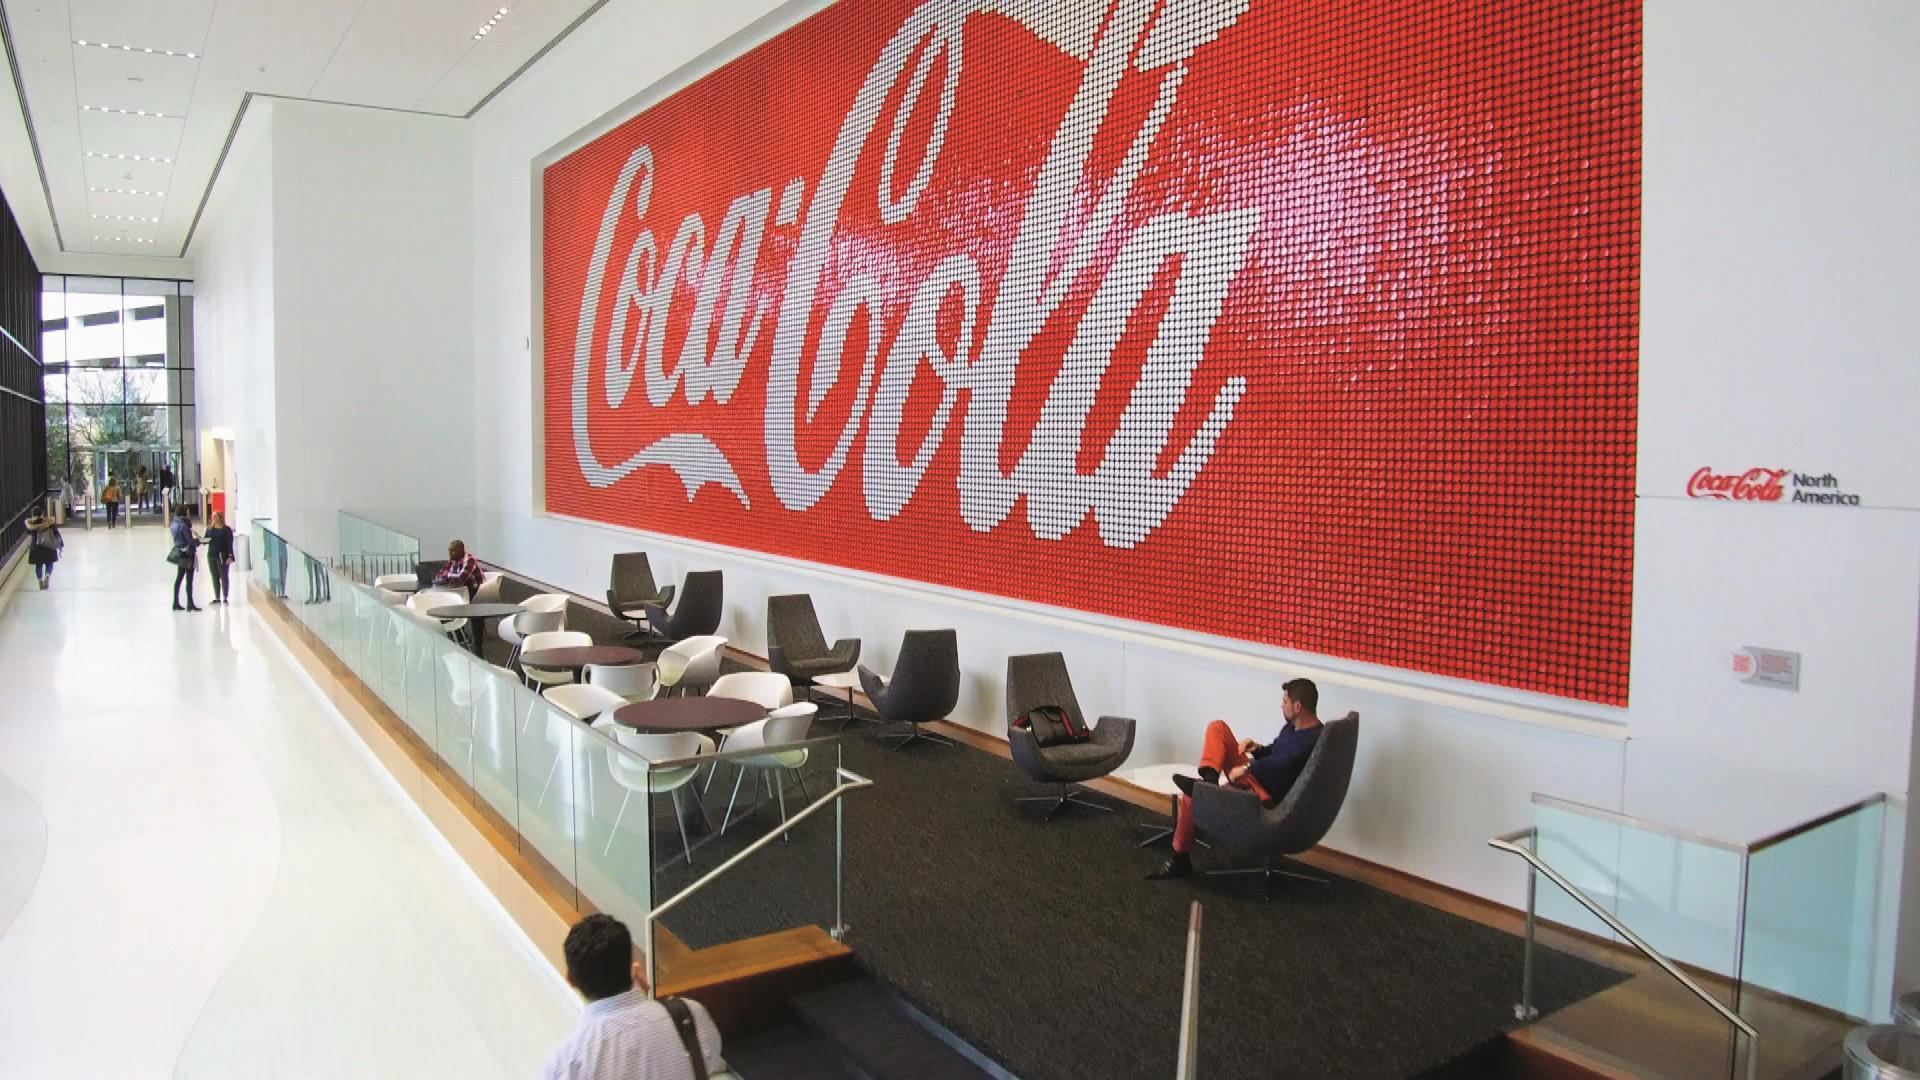 The Secrets Of Coca-Cola: The Billion Dollar Beverage